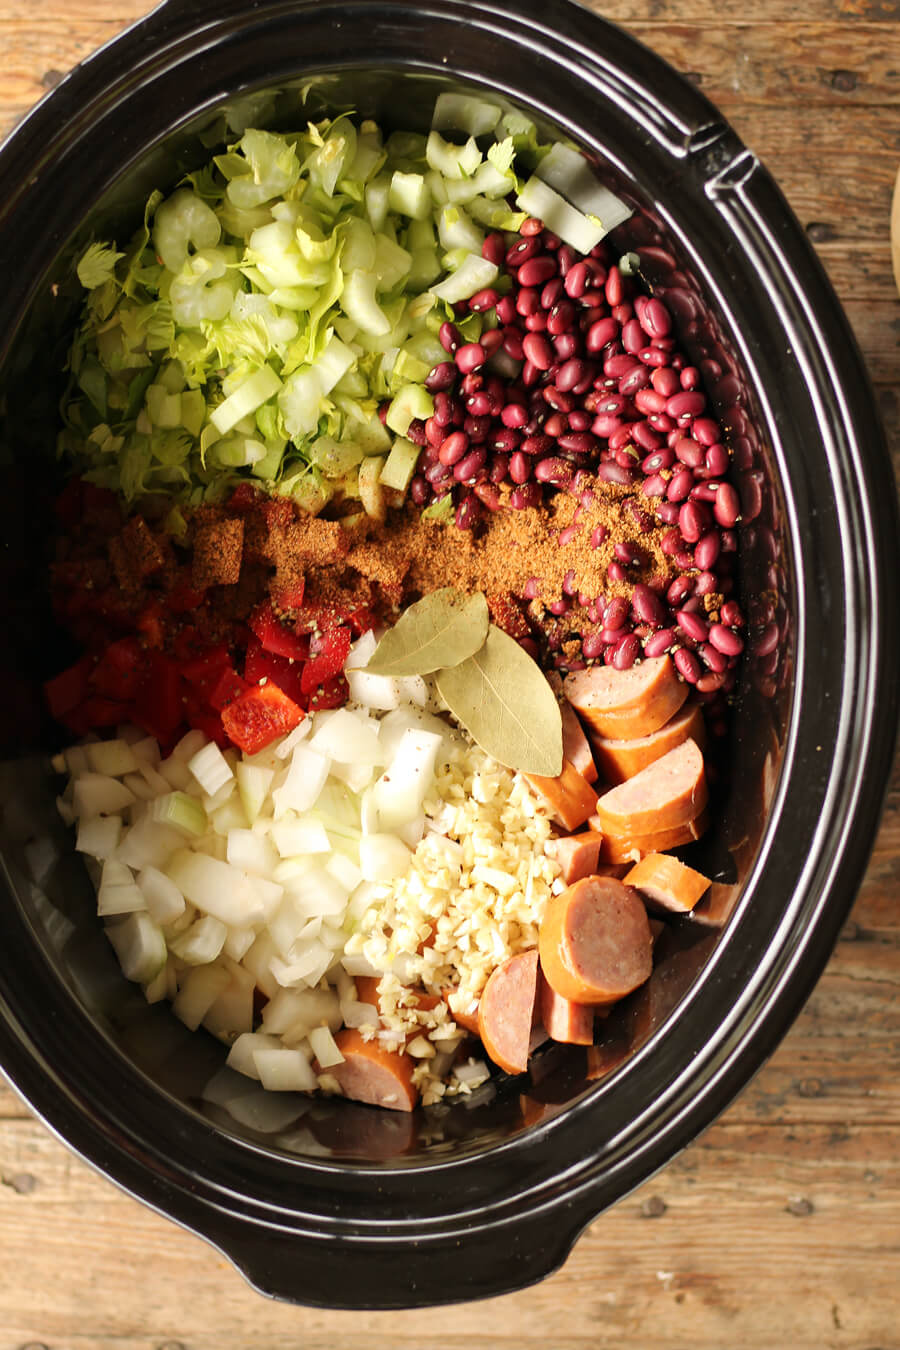 Overhead picture of a pot filled with ingredients to make red beans and rice, including garlic, onions, smoked sausage, peppers, celery, and more.